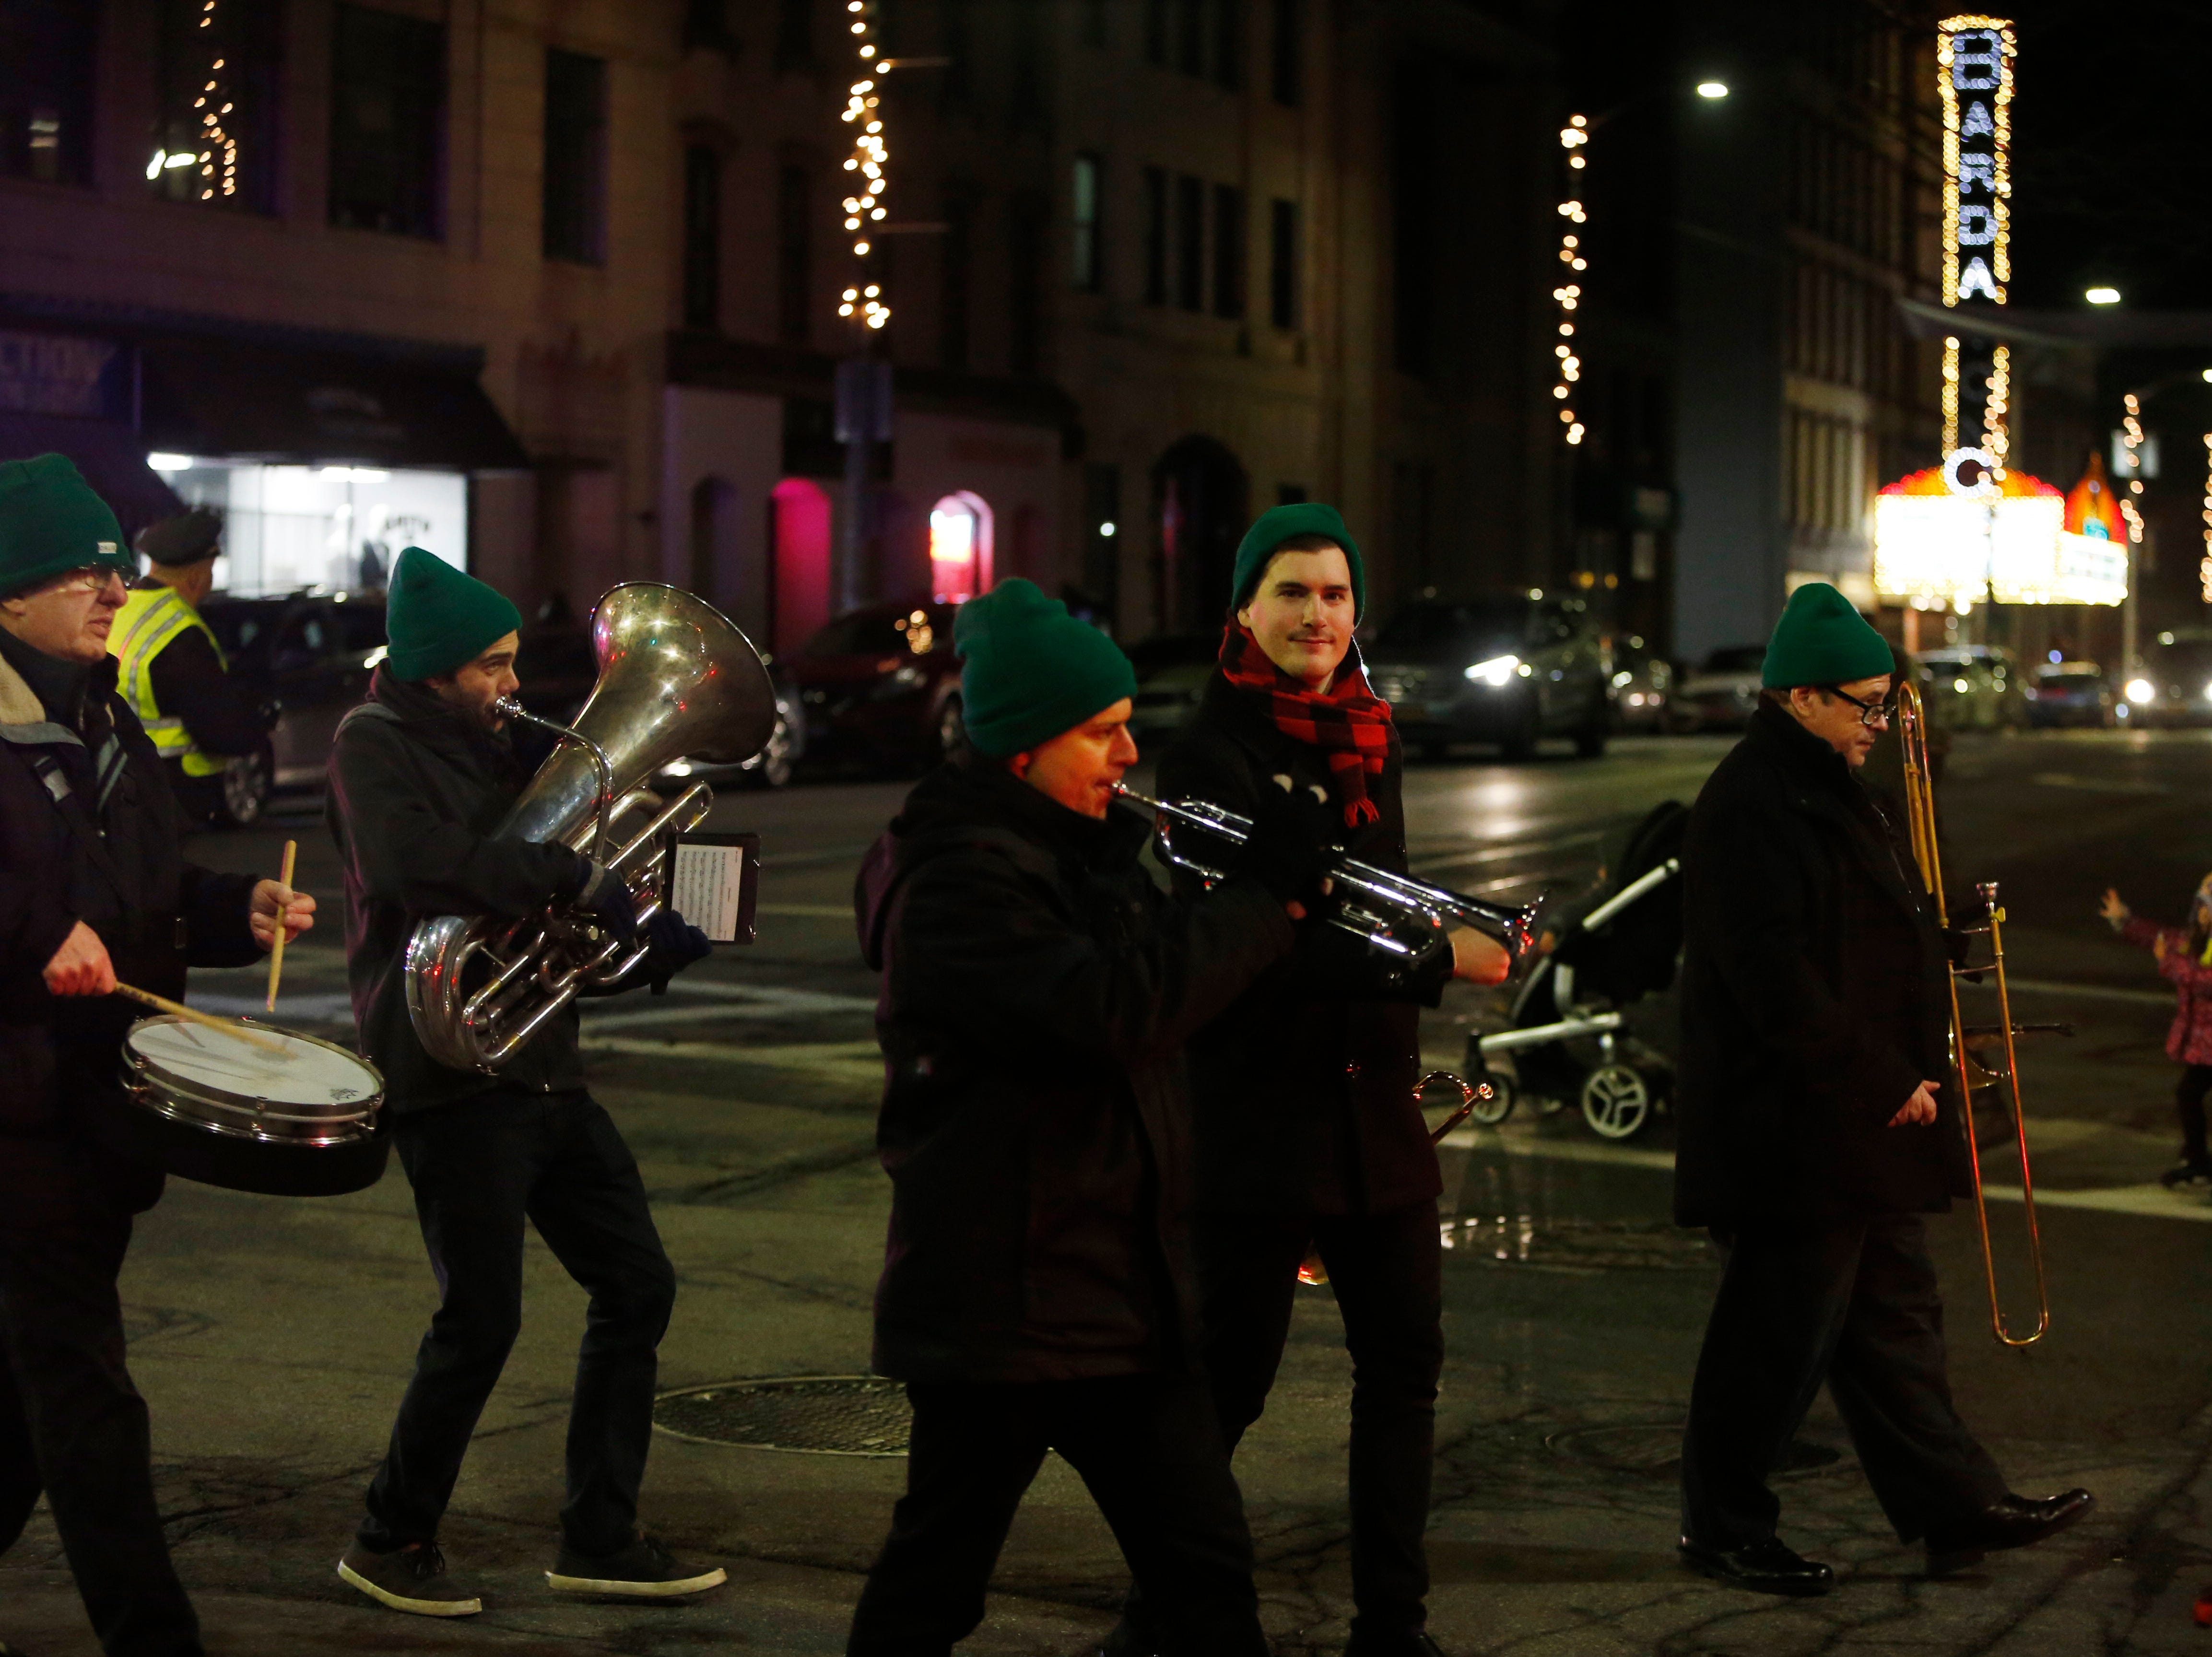 The Wholly Brass Band performs during the Celebration of Lights Parade in the City of Poughkeepsie on November 30, 2018.